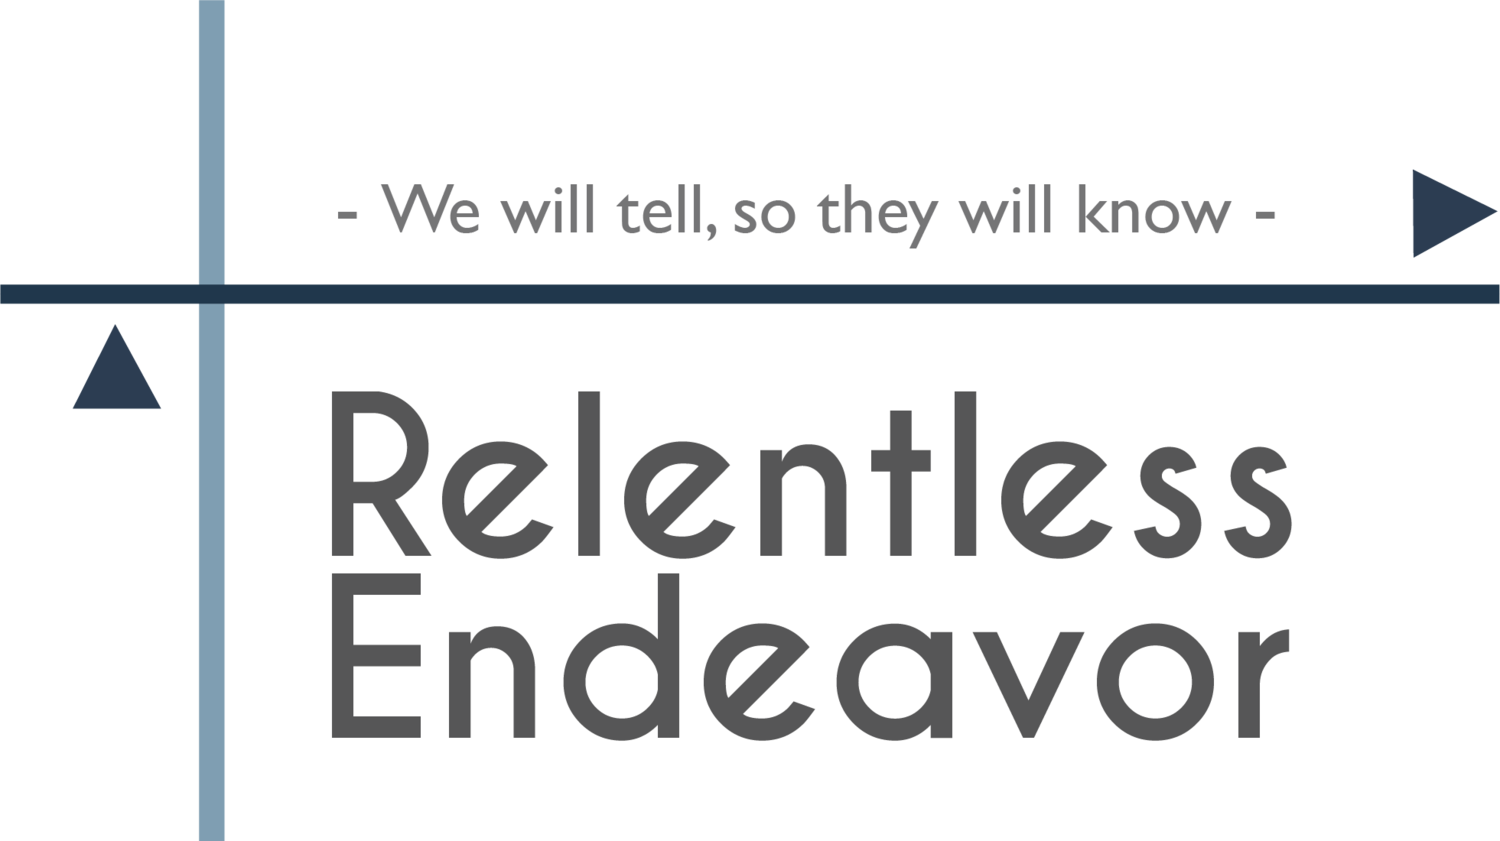 Relentless Endeavor